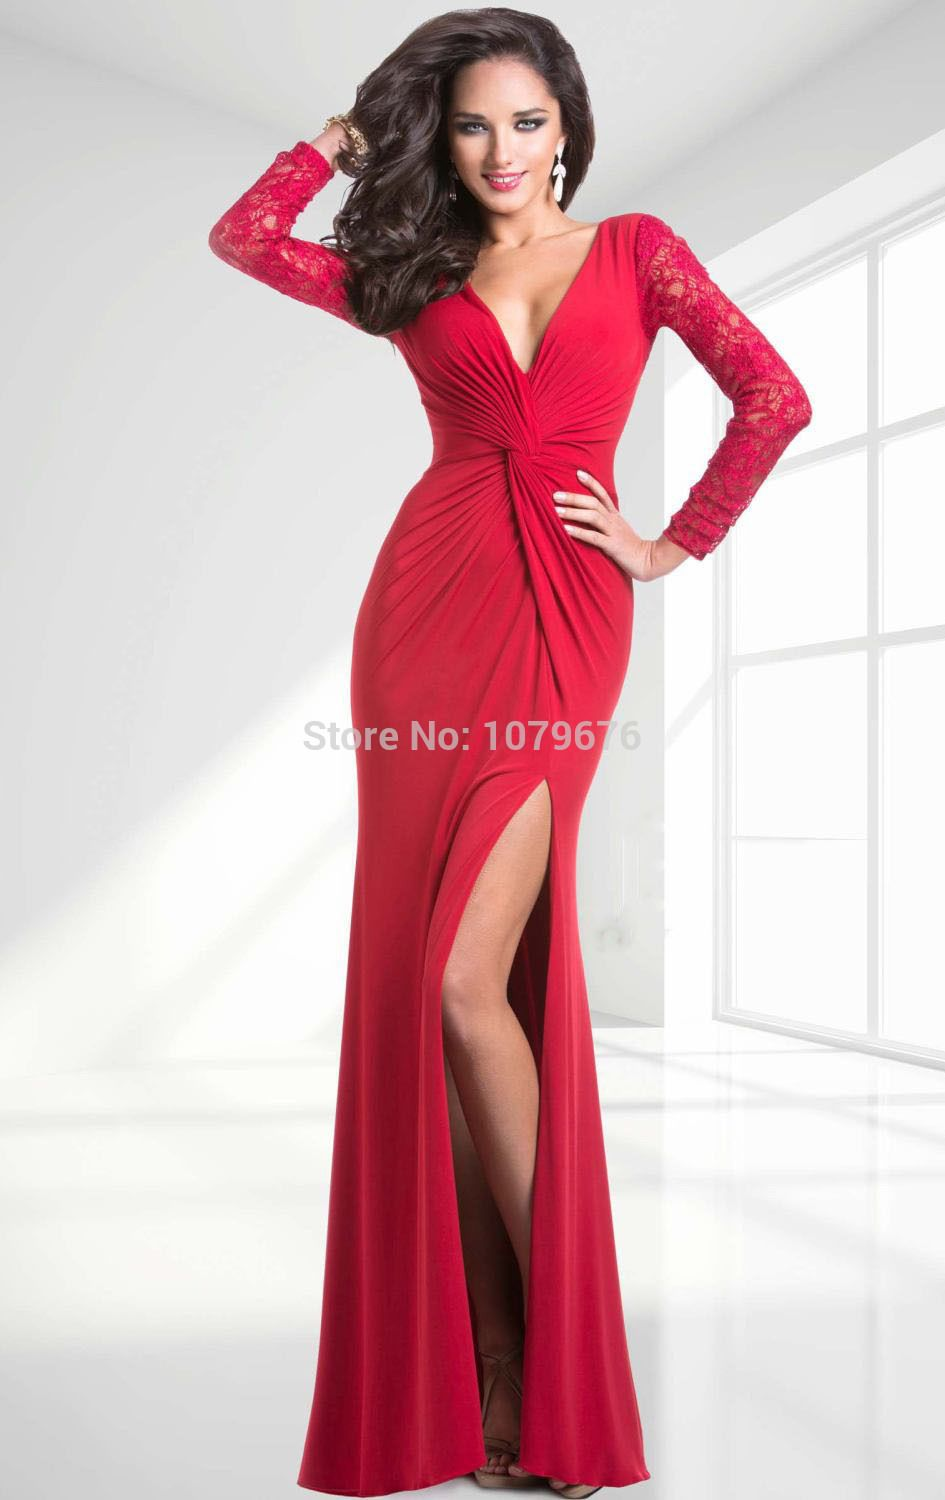 Sexy deep v neck lace long sleeves evening dresses red side split